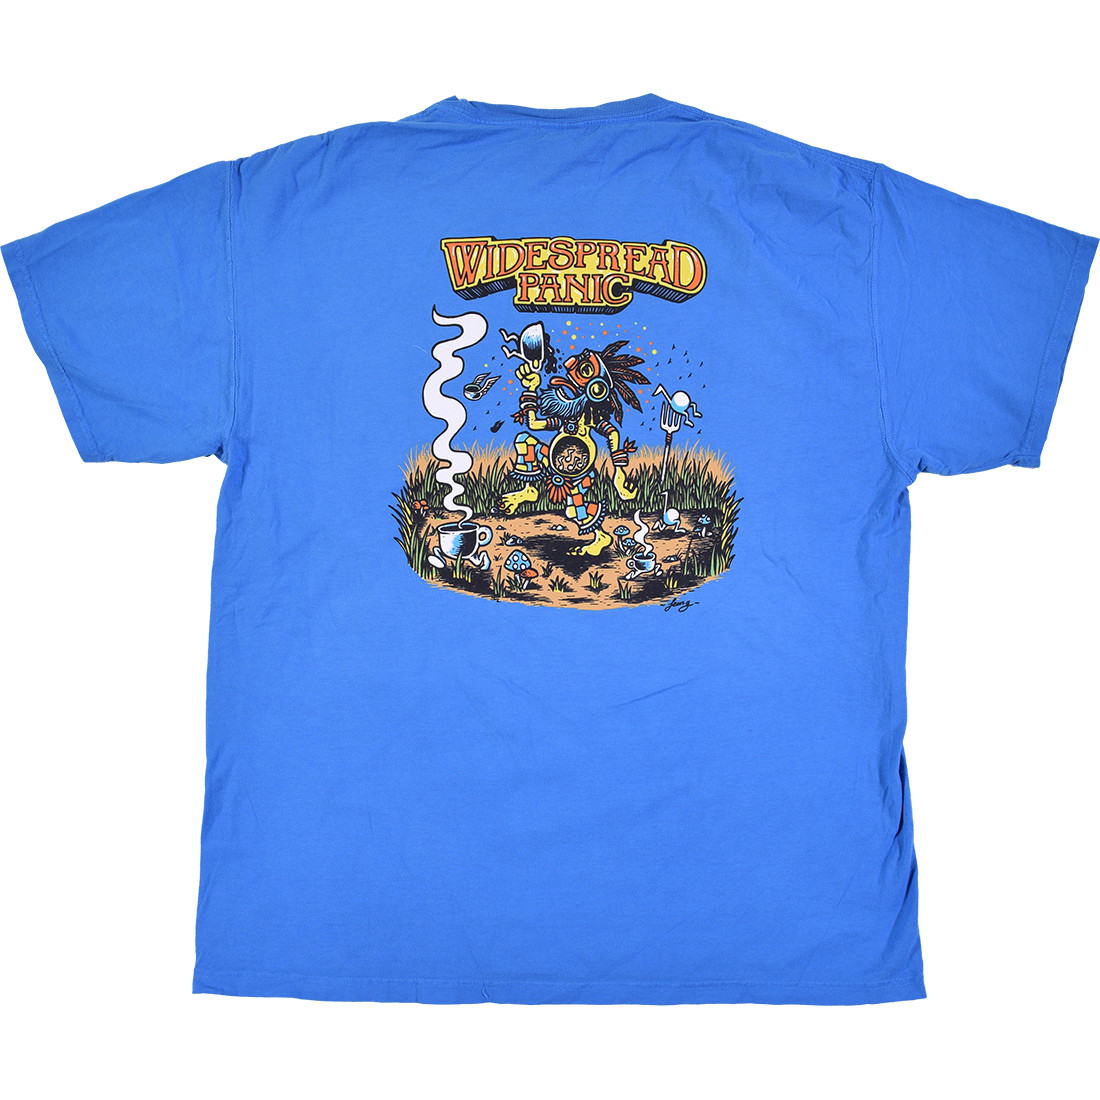 Proving Grounds Blue T-Shirt